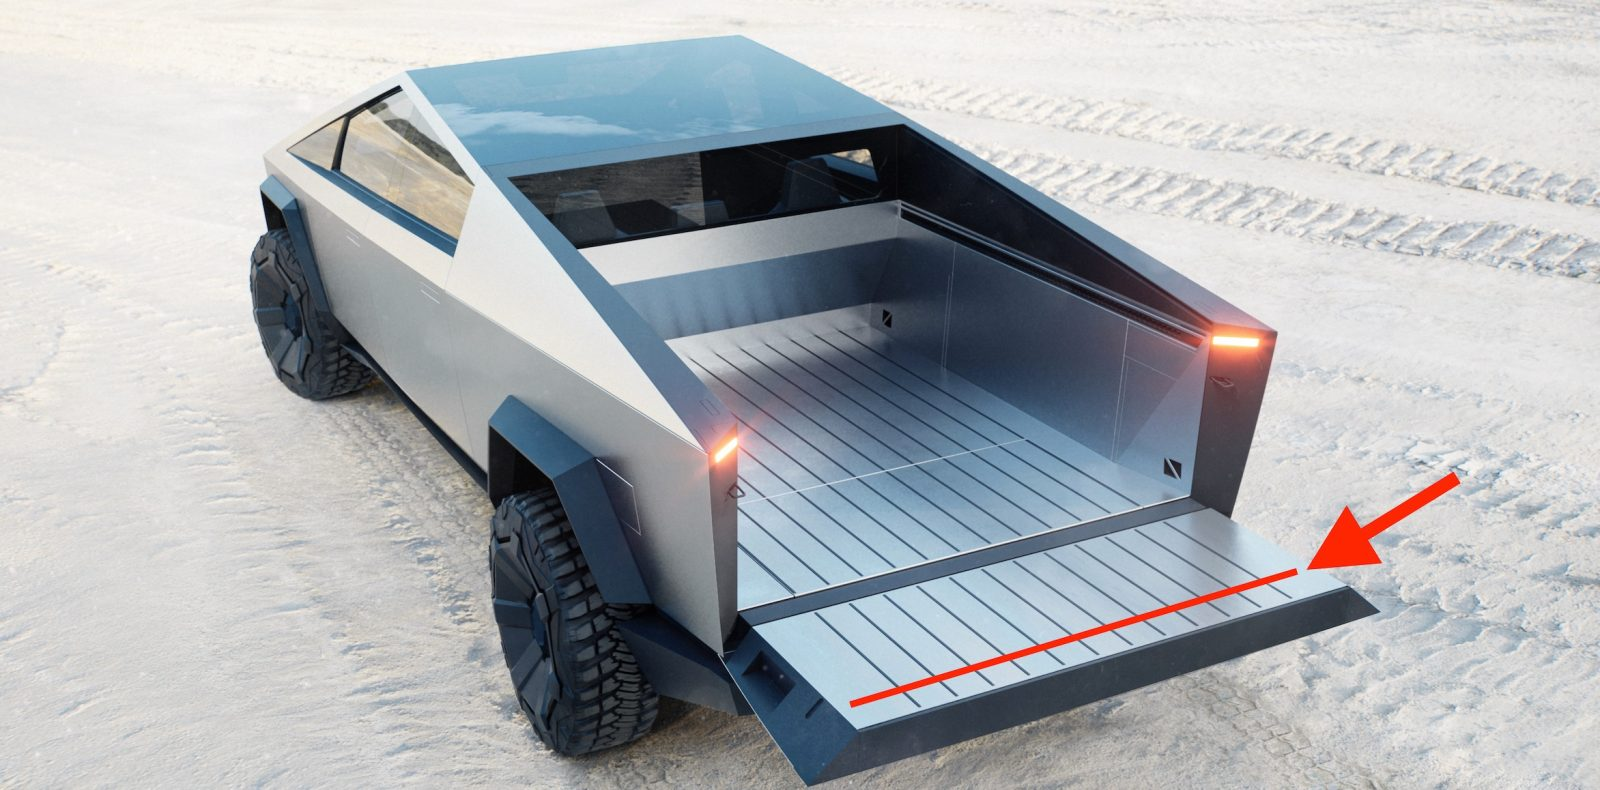 Tesla Cybertruck is a 'medium-duty truck' due to payload capacity, says Tesla in CARB filing